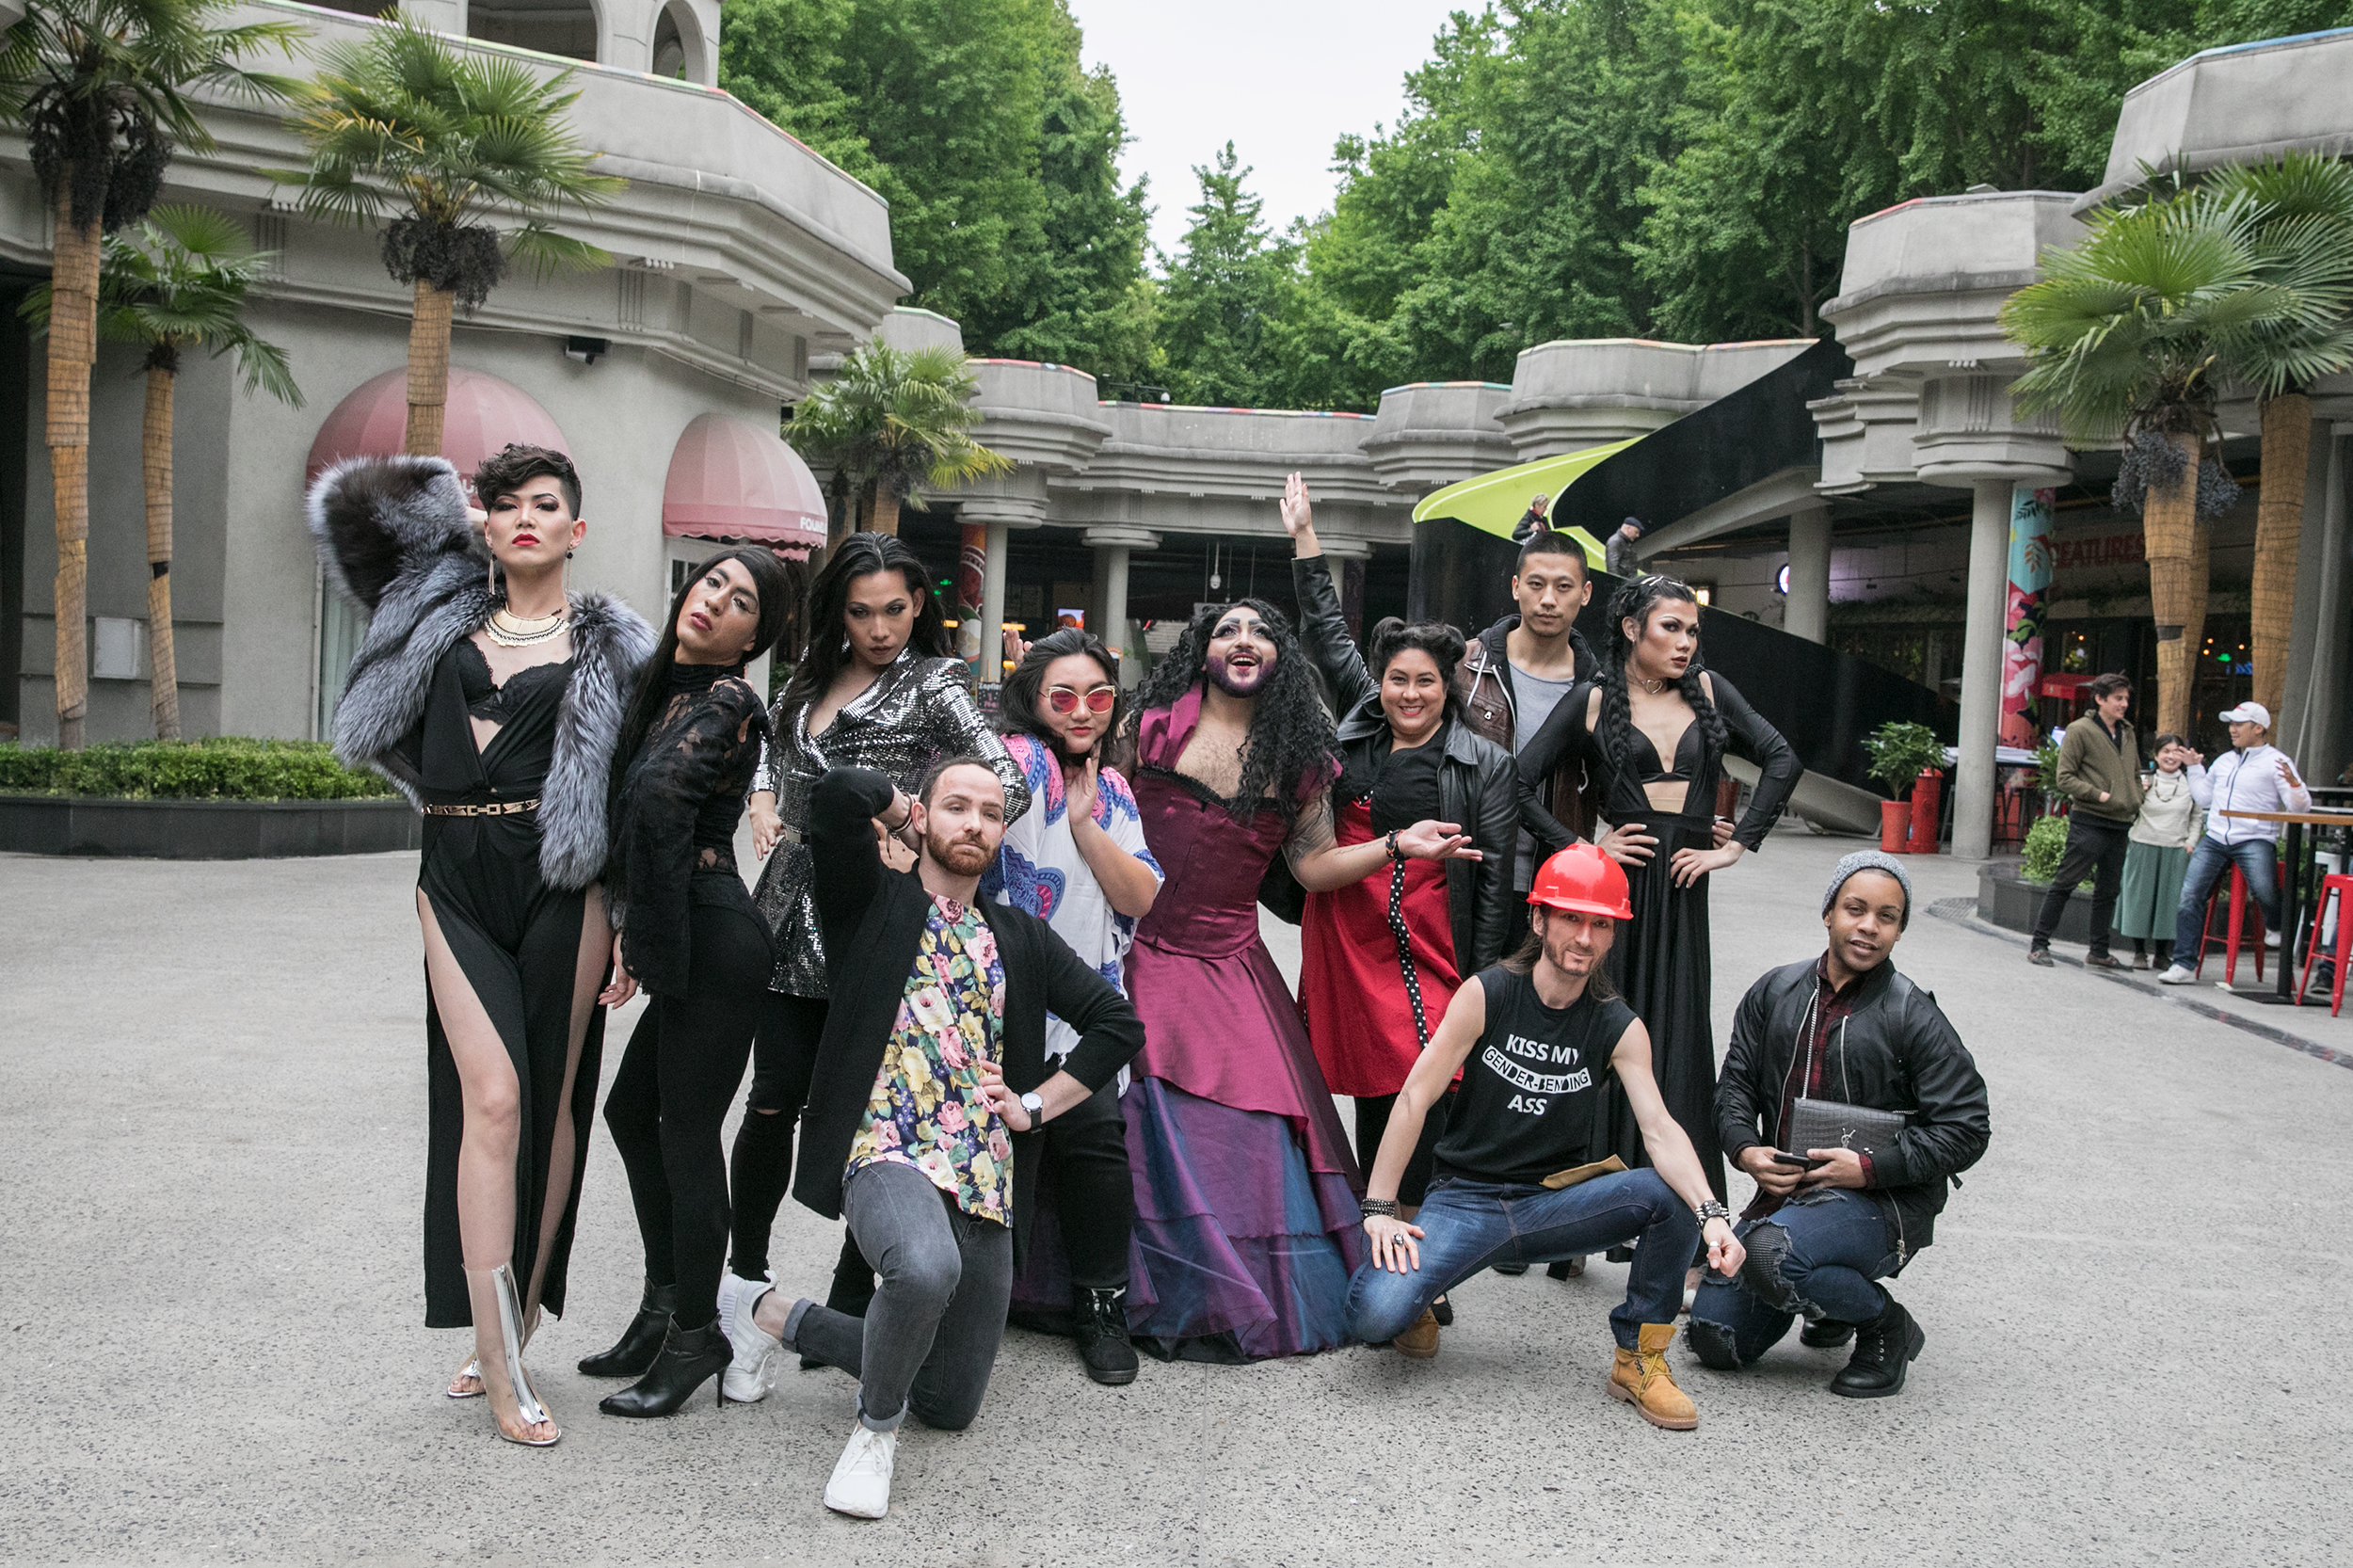 Flashmob featuring local drag kings and queens Cocosanti, Dorian T. Fisk, Fantasia Valentina, Erica, Shark, Nina 'the Duchess' Flowers and allies, Shanghai, April 14, 2018. Courtesy of Alejandro Scott